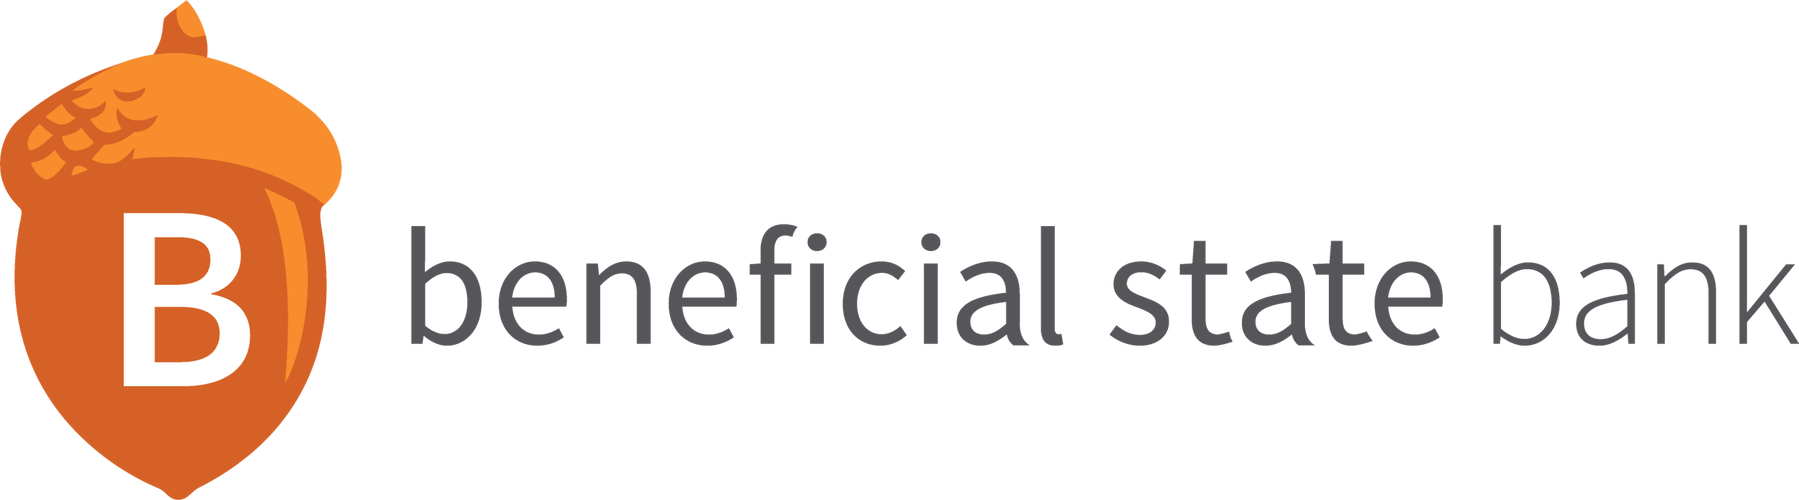 beneficial state bank